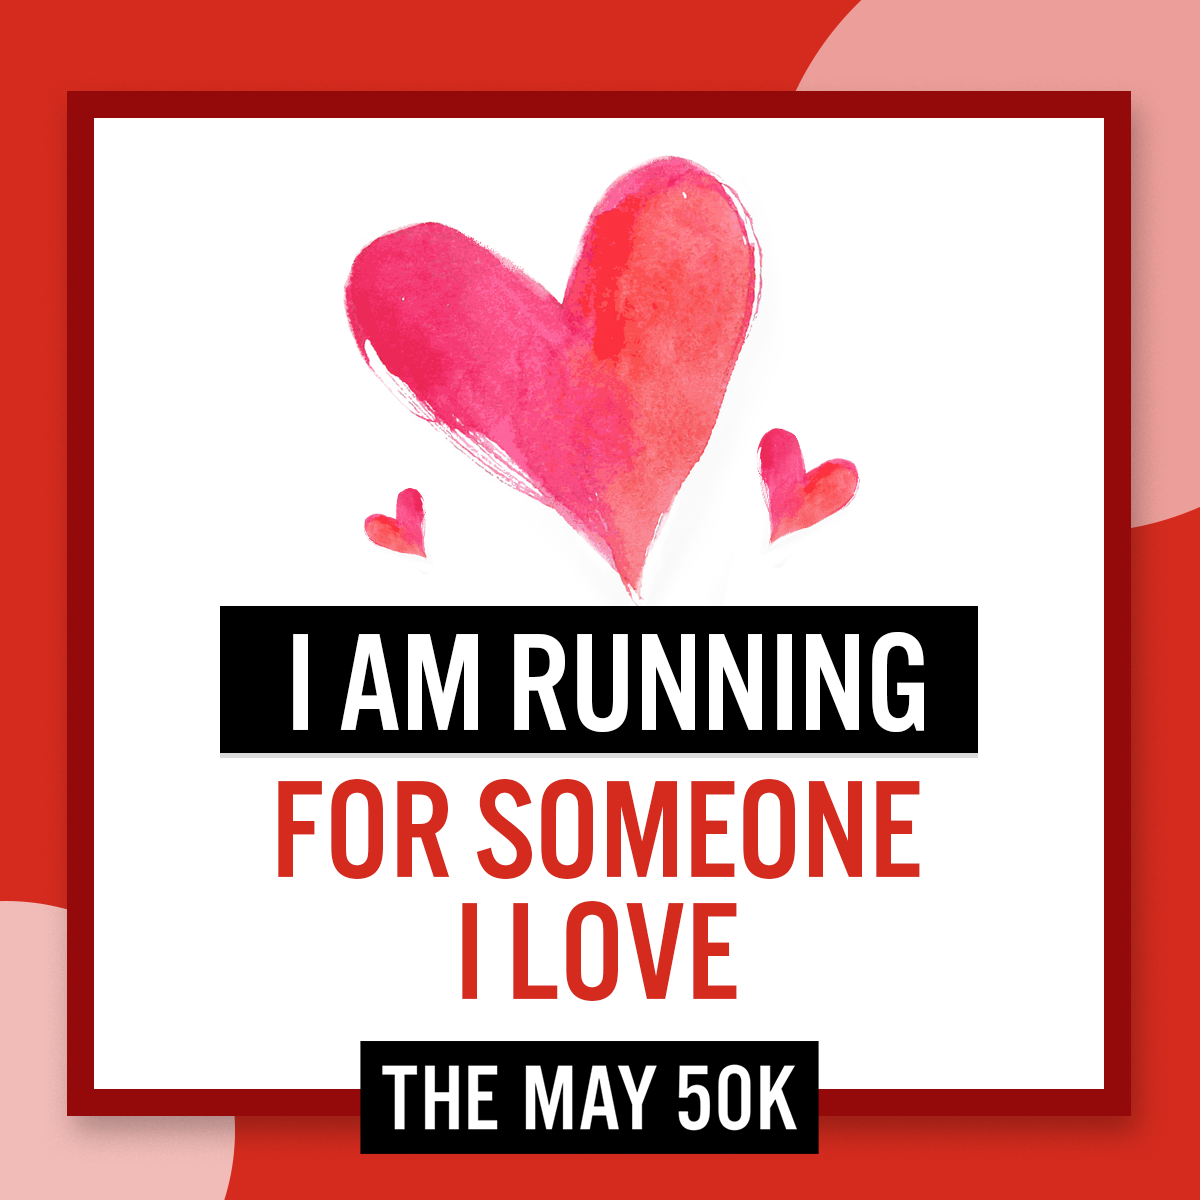 Run For Someone Love